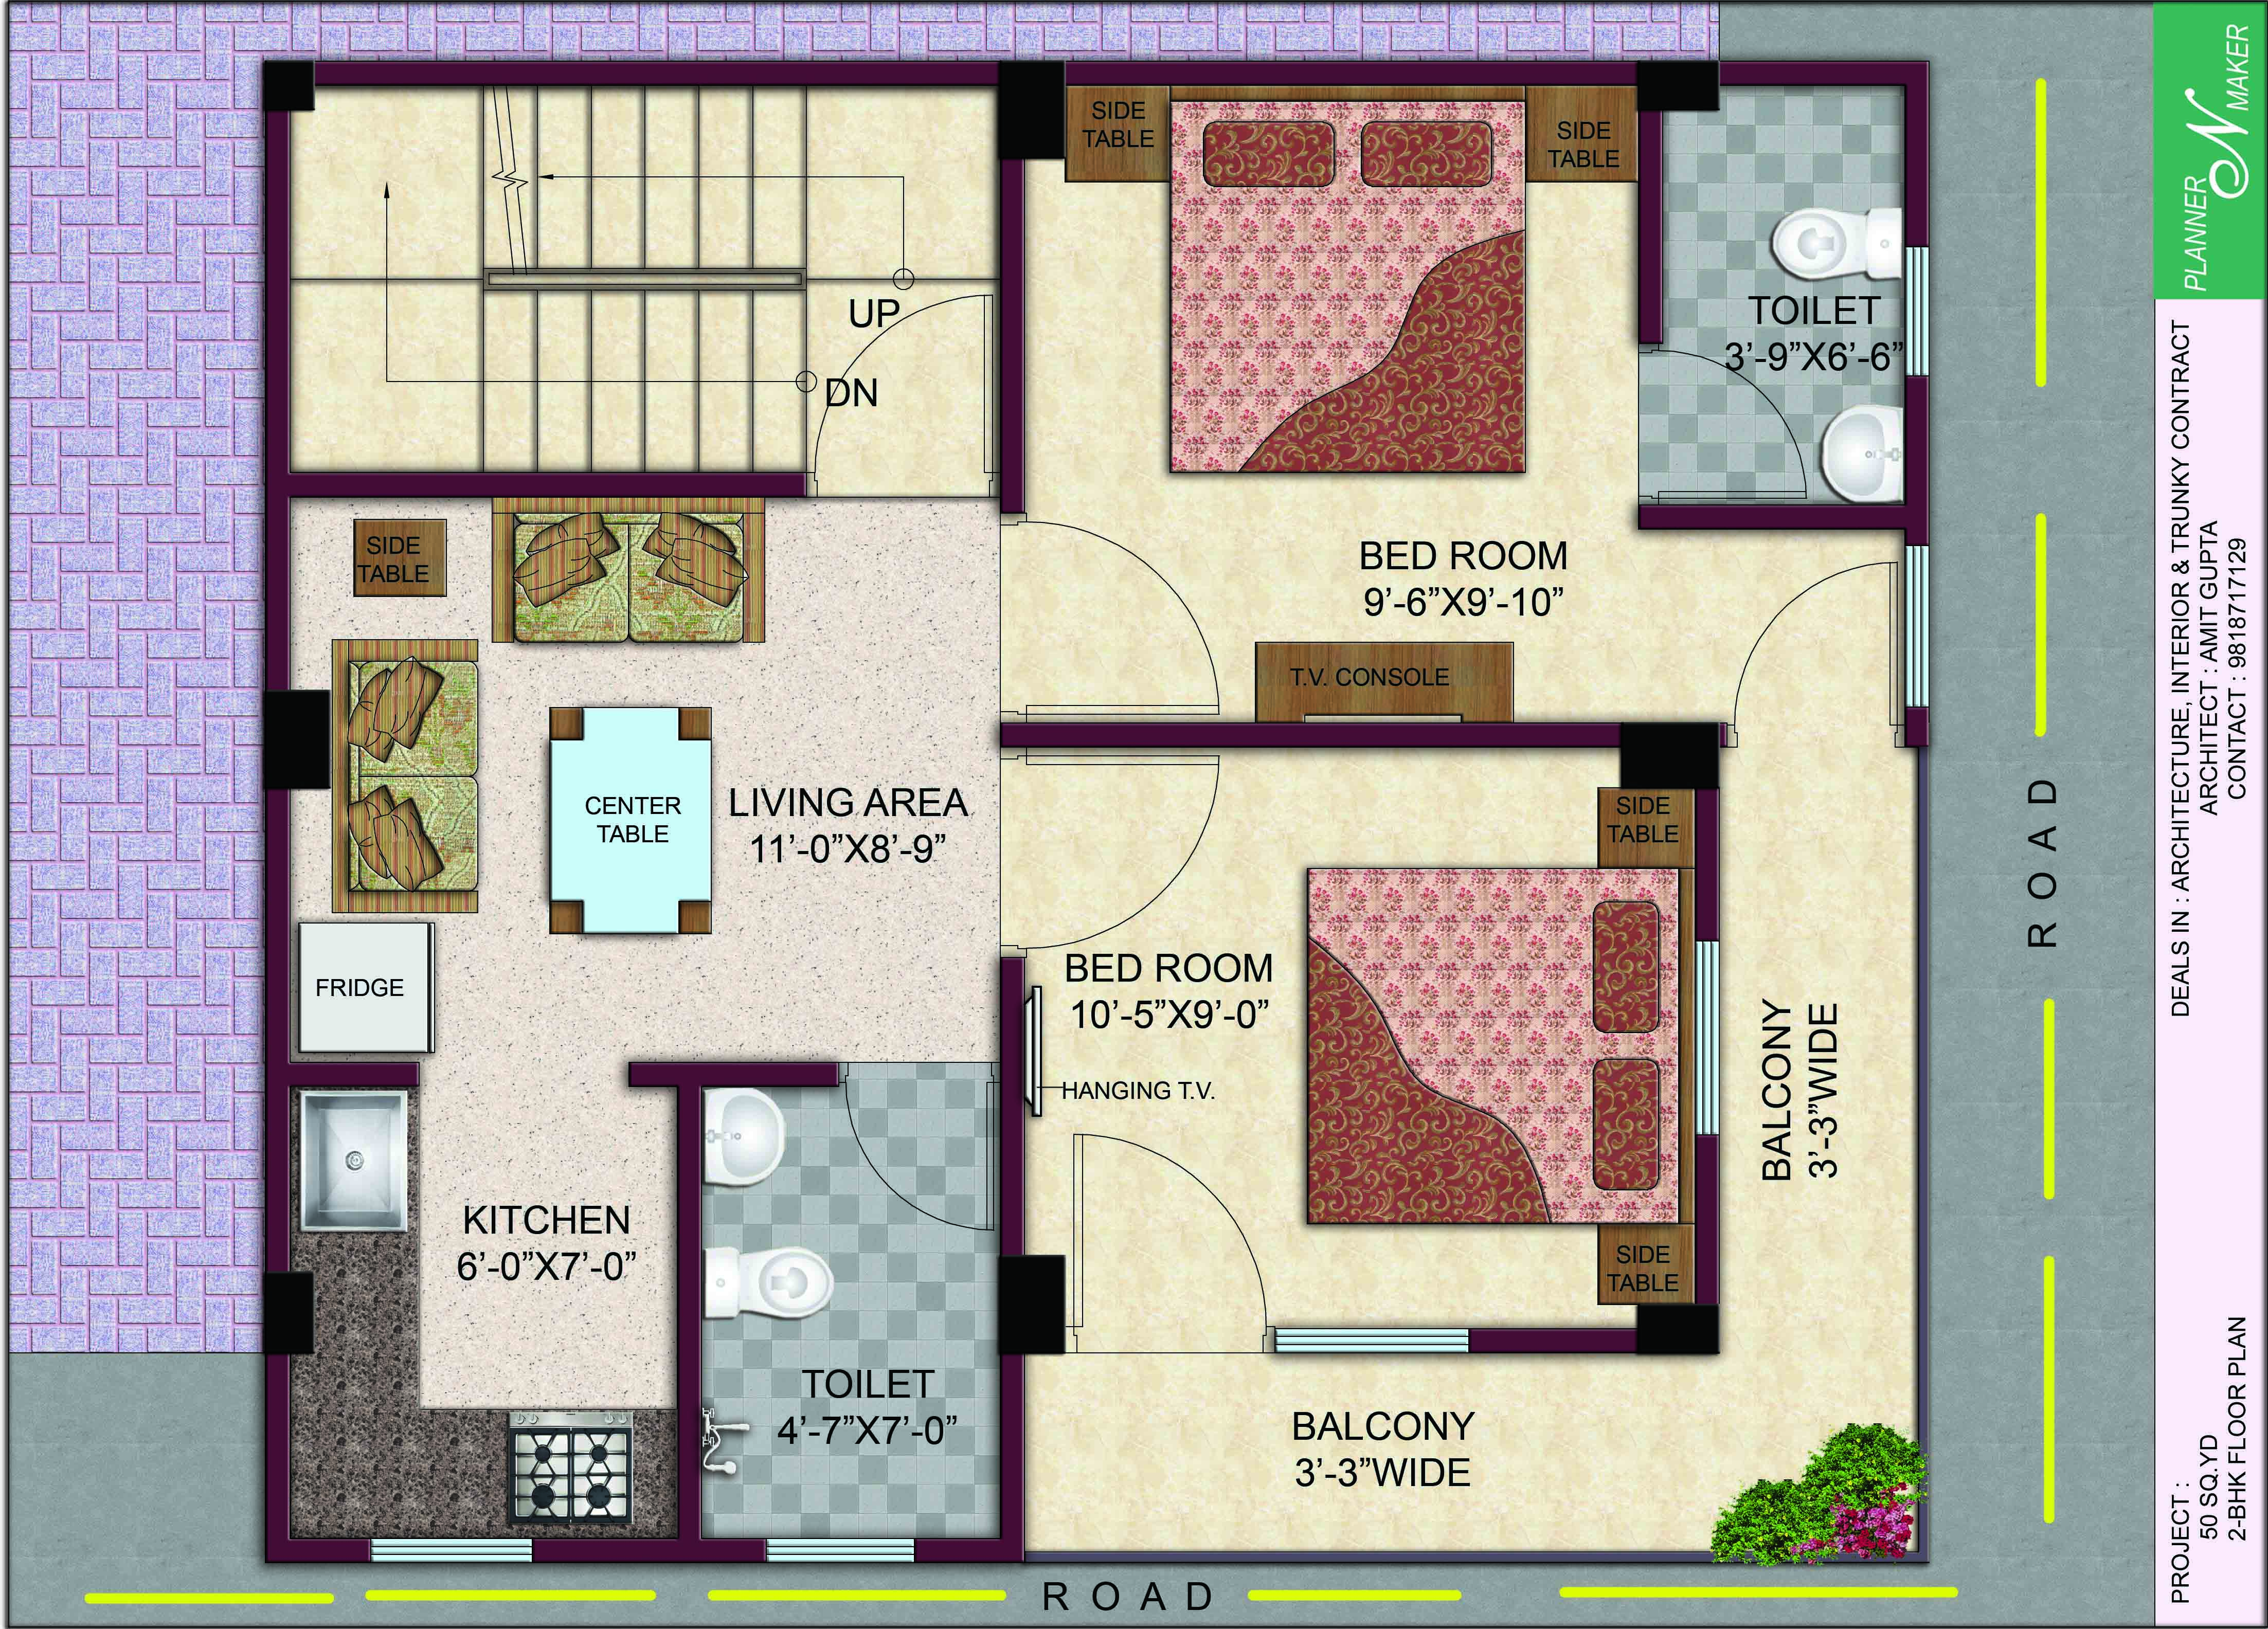 New Villa Reale floorplan 4